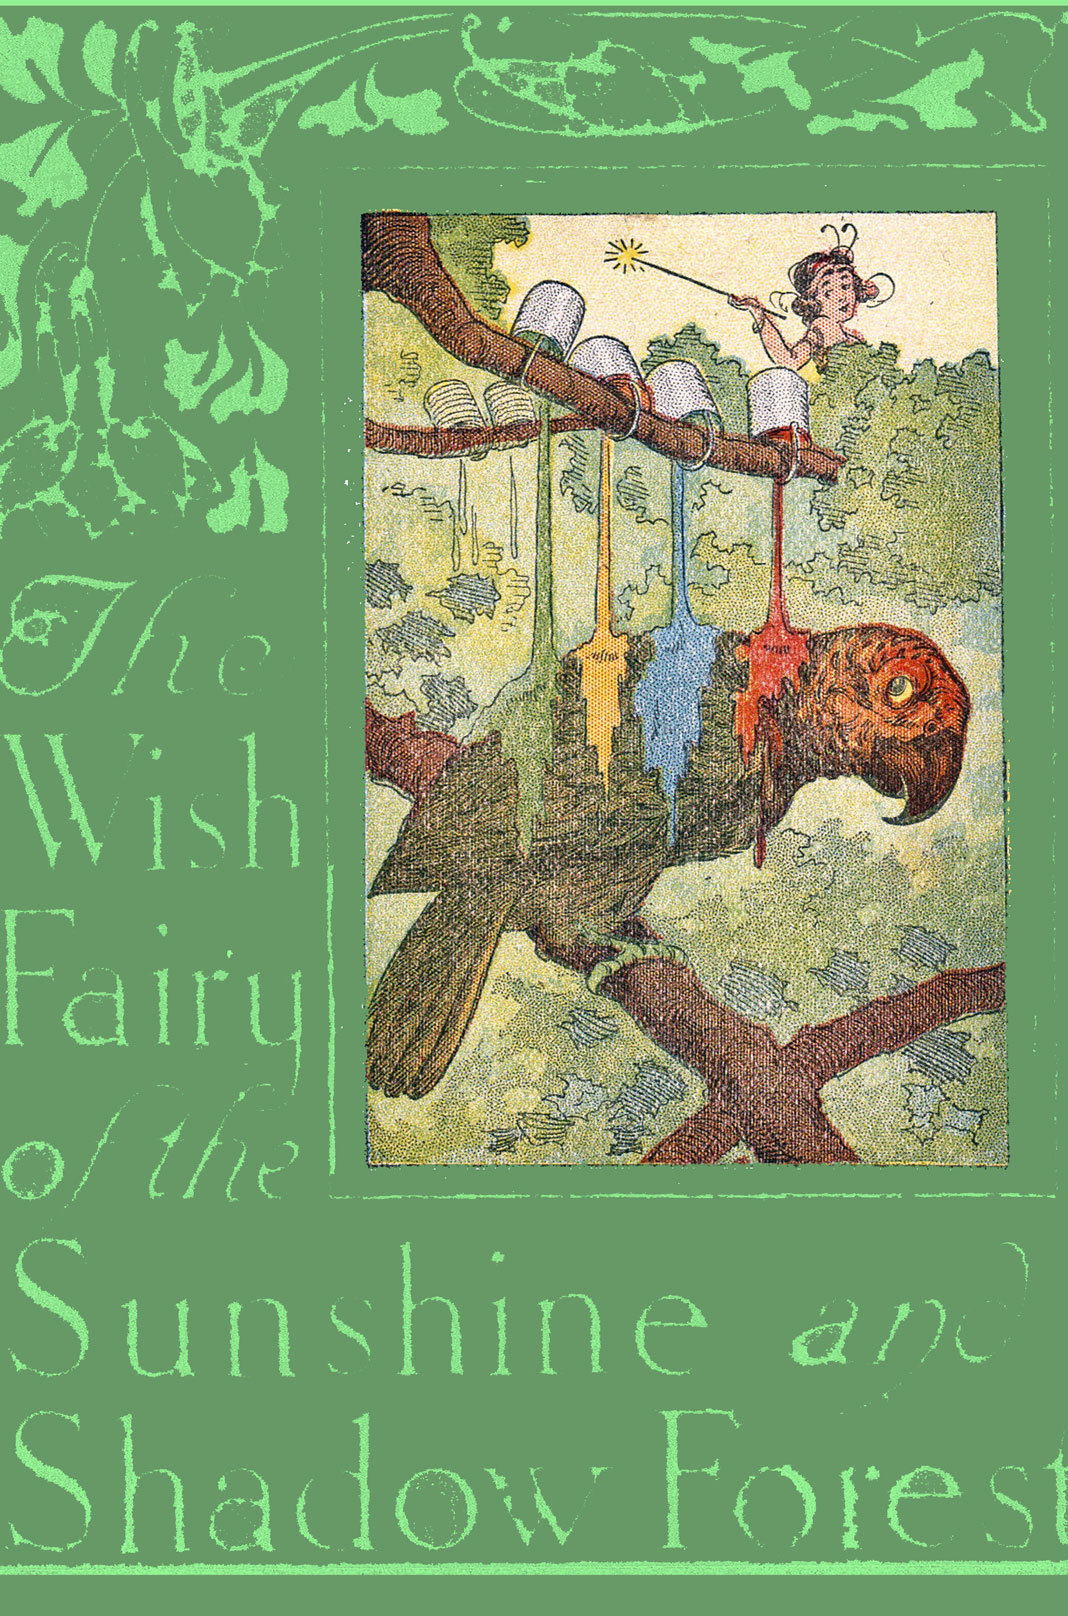 The  Cover of the Book, which is Dark Green with lighter green letters and trailing vines and leaves,  with a picture of a parrot getting paint poured on its back, off center to the right.